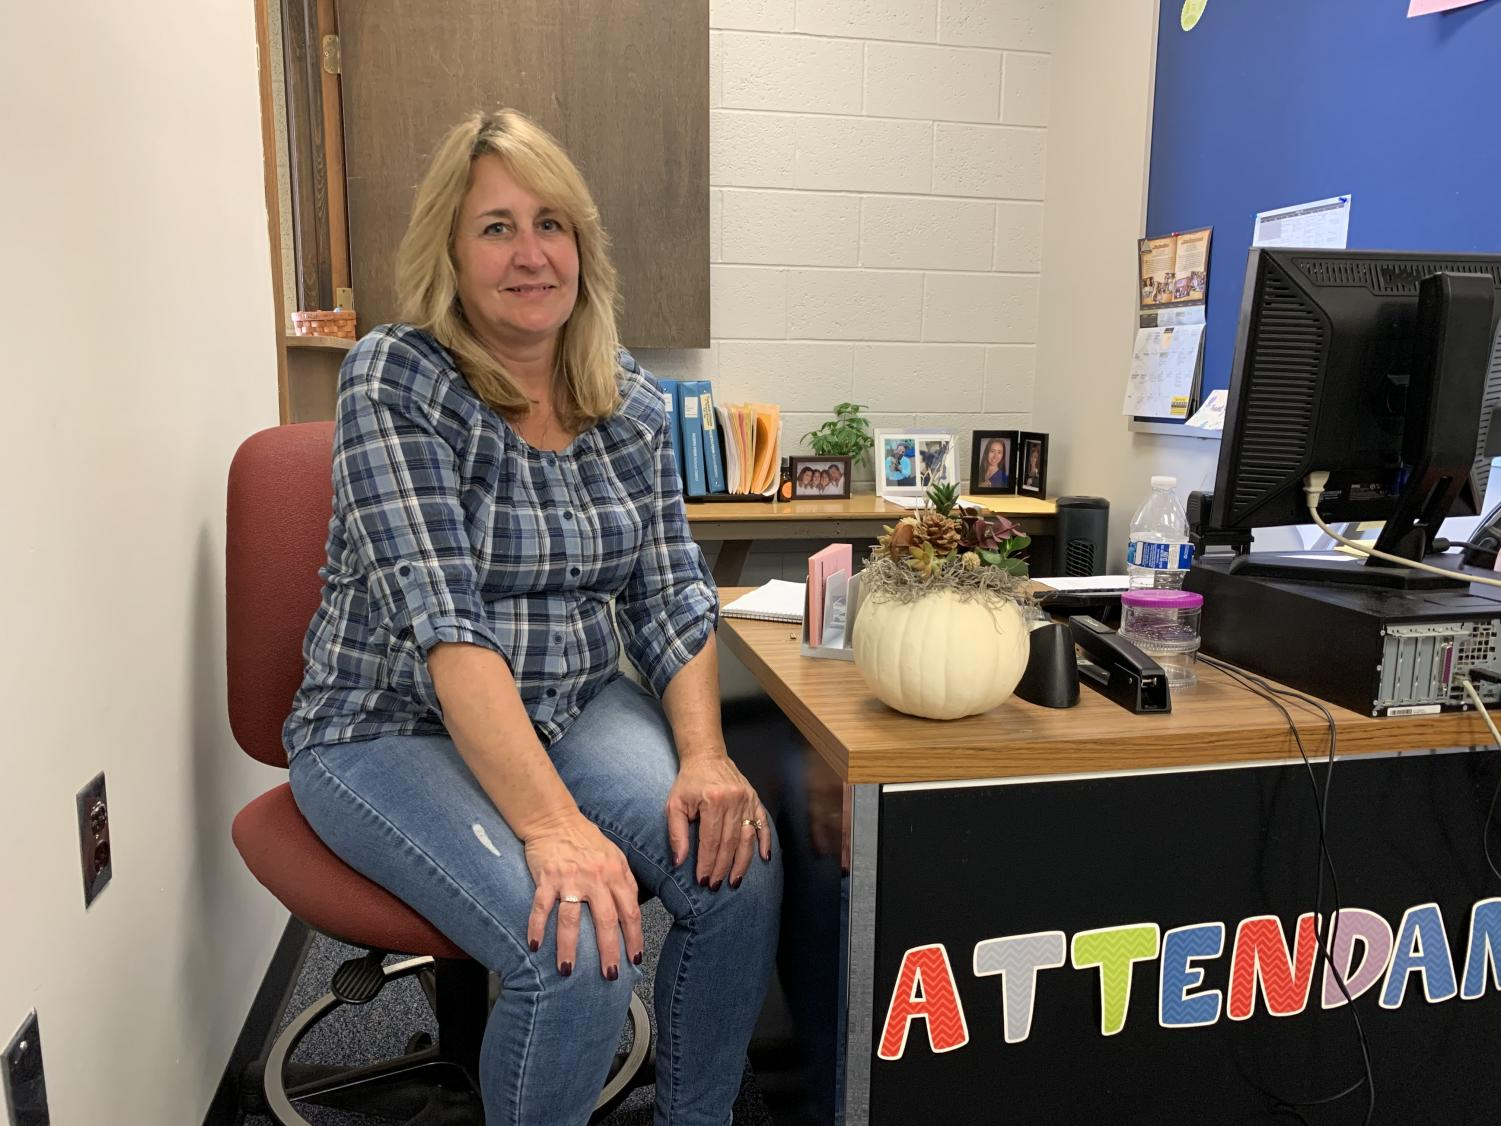 Mrs. Foster is now North Penn High School's newest attendance secretary for D103 after working 10 years at Pennfield Middle School as the receptionist.